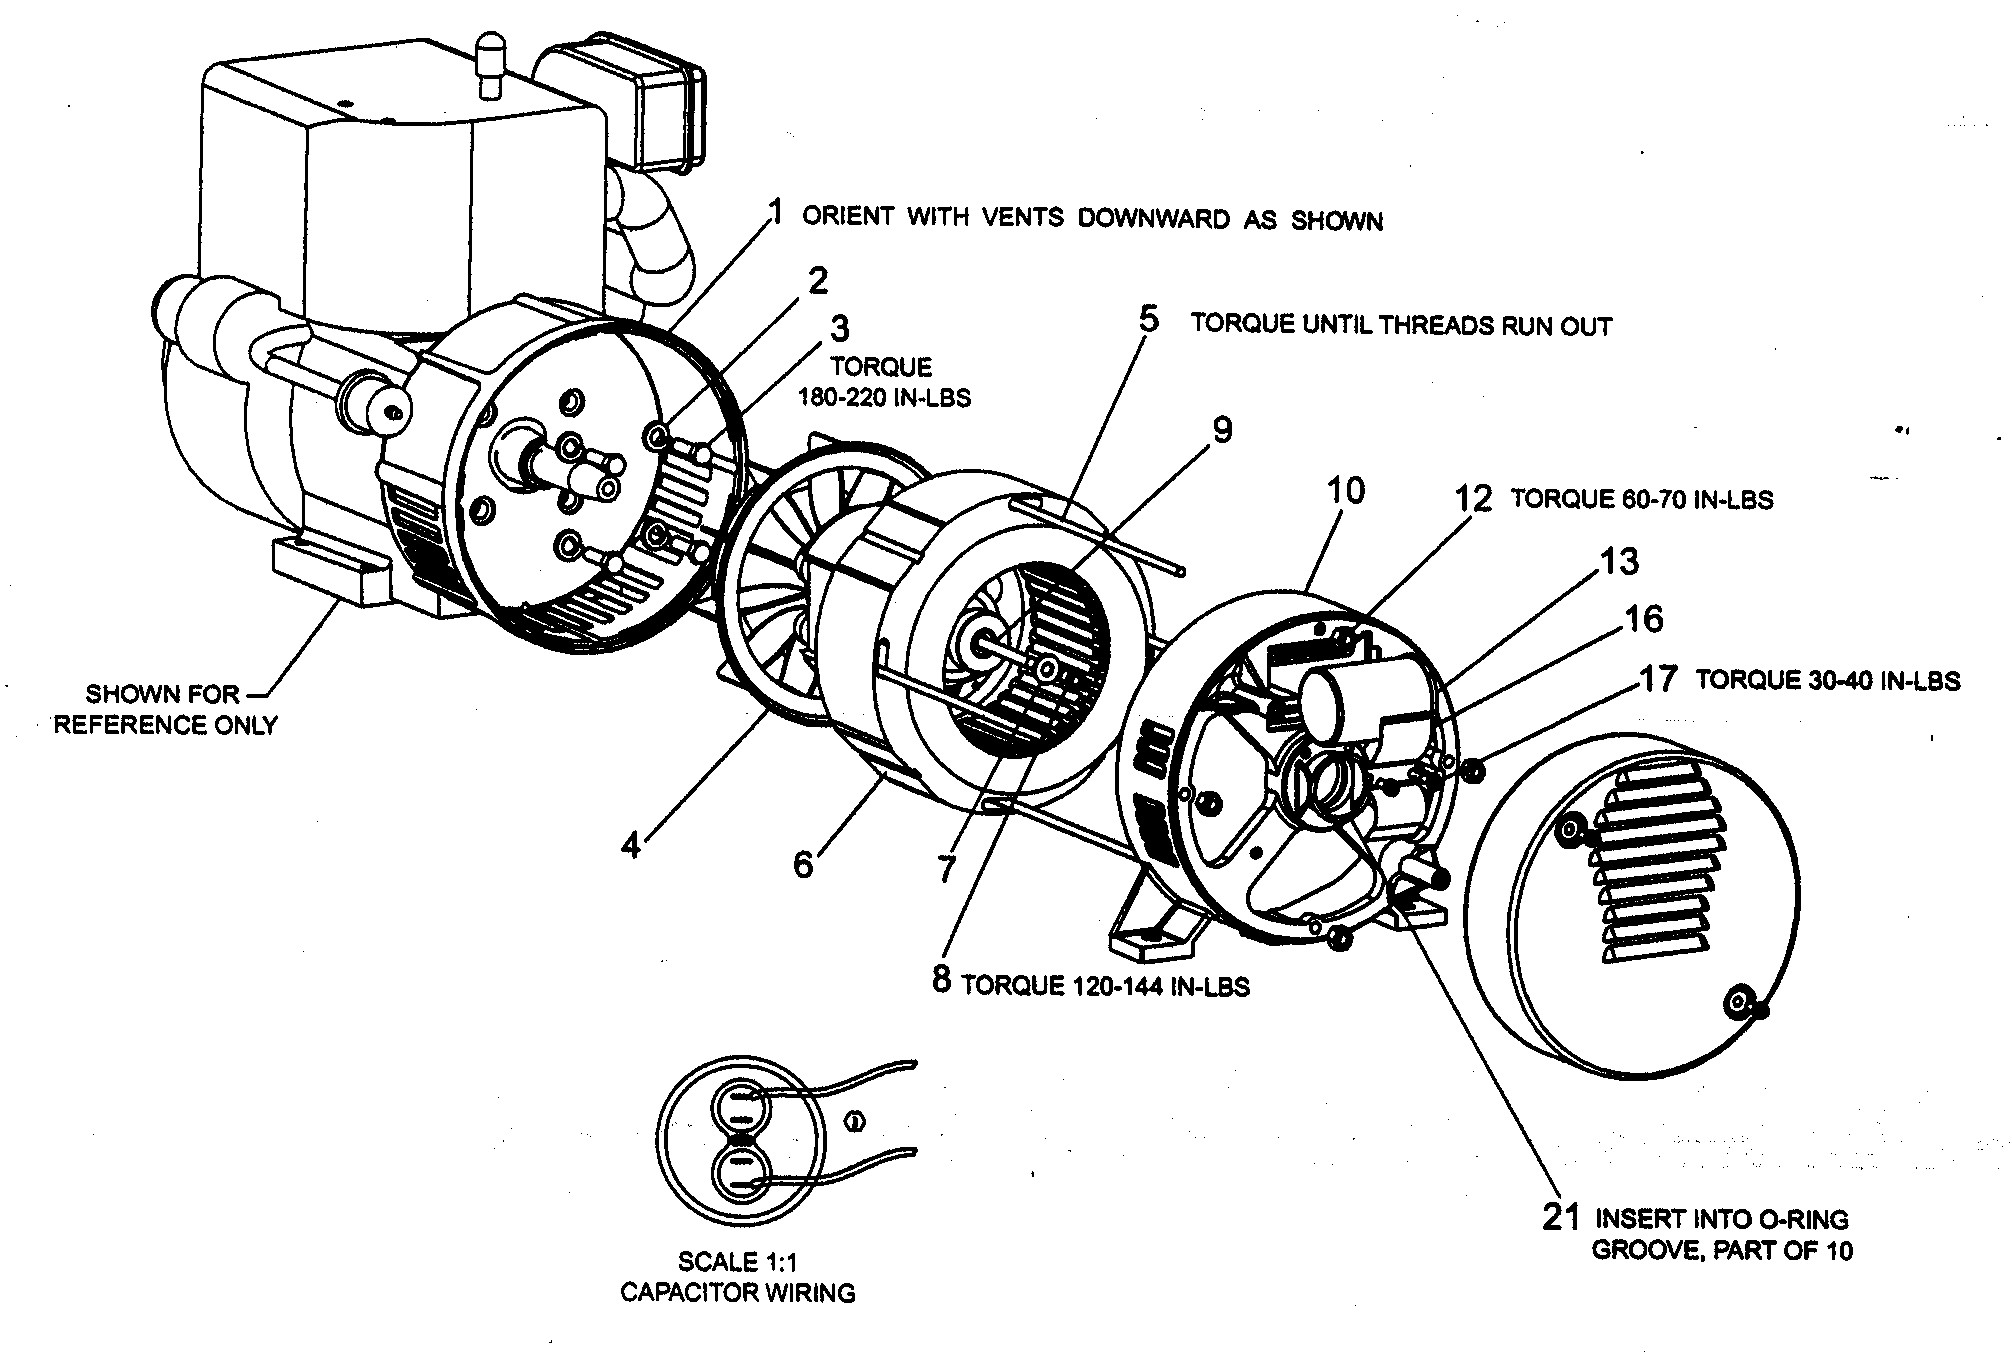 honda engine parts diagram craftsman generator parts model of honda engine  parts diagram craftsman generator parts